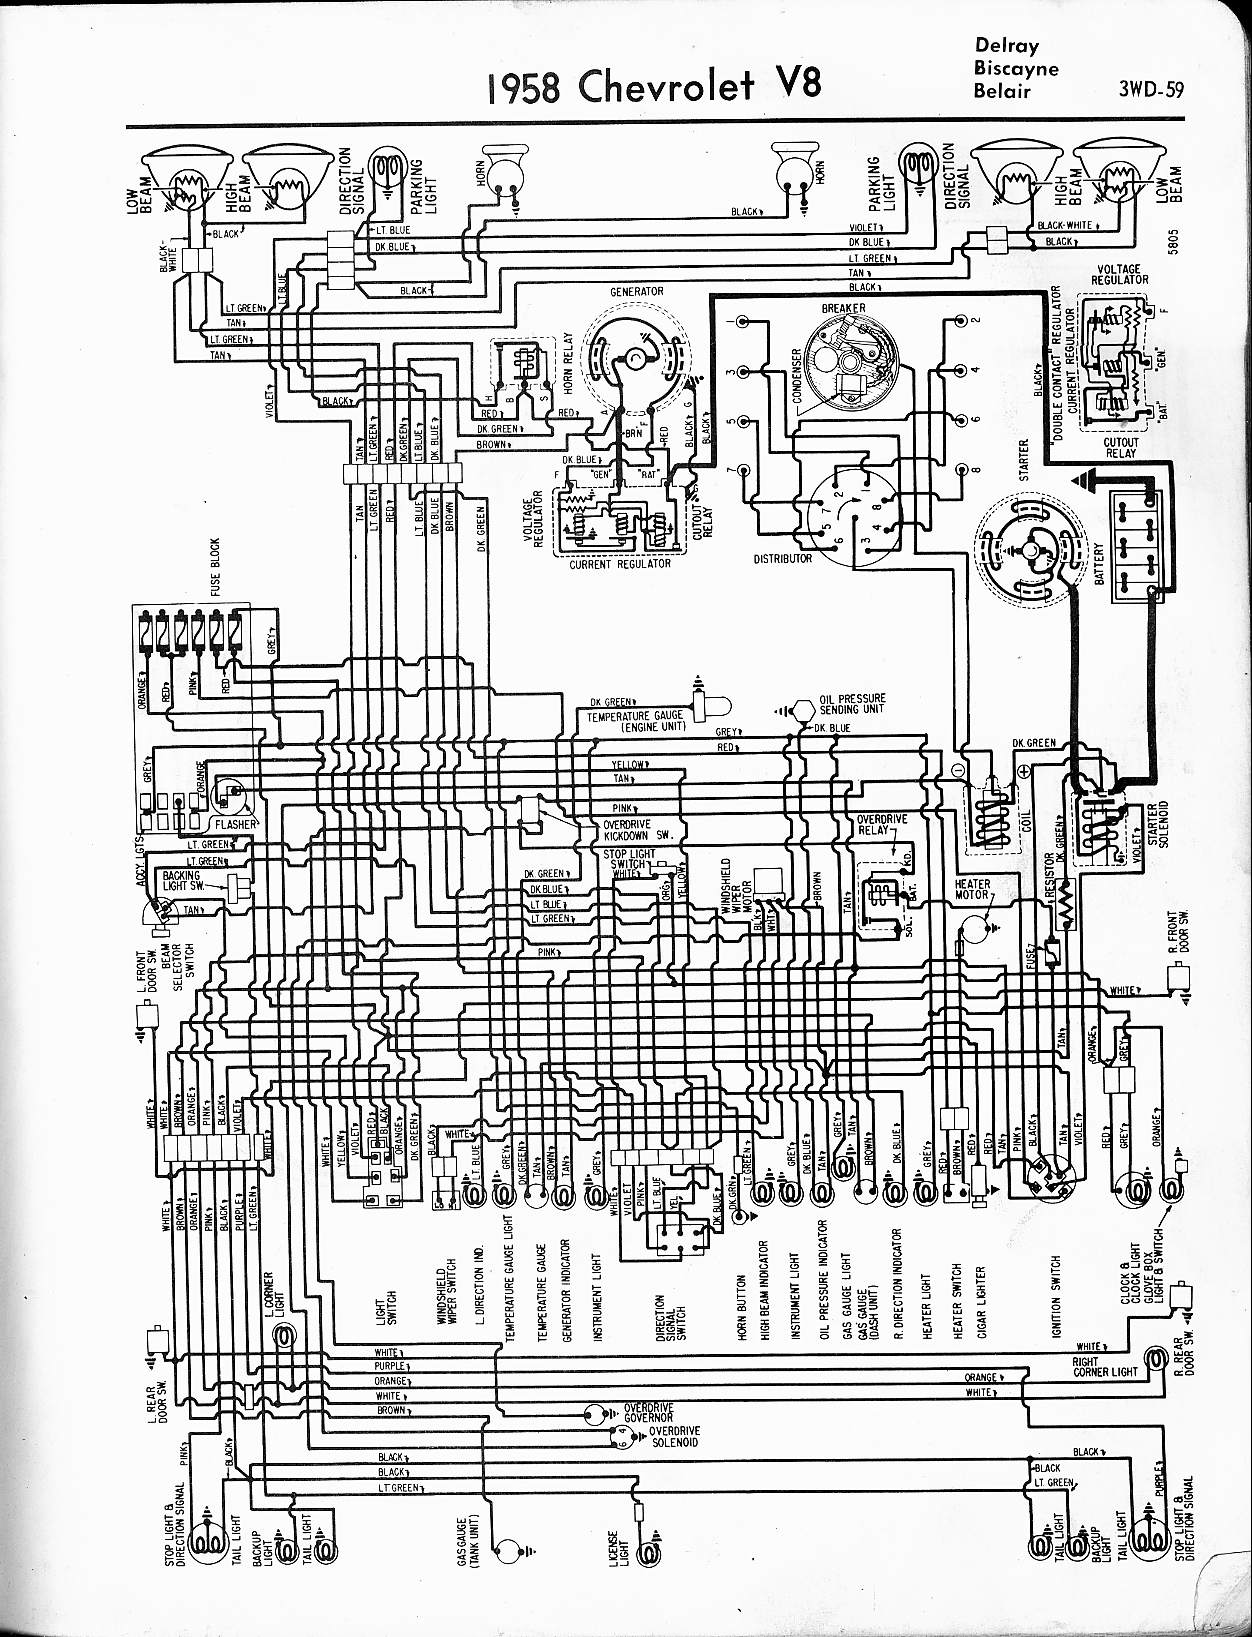 1958 Corvette Wiring Diagram Opinions About 1972 Air Conditioning 57 65 Chevy Diagrams Rh Oldcarmanualproject Com 1964 1962